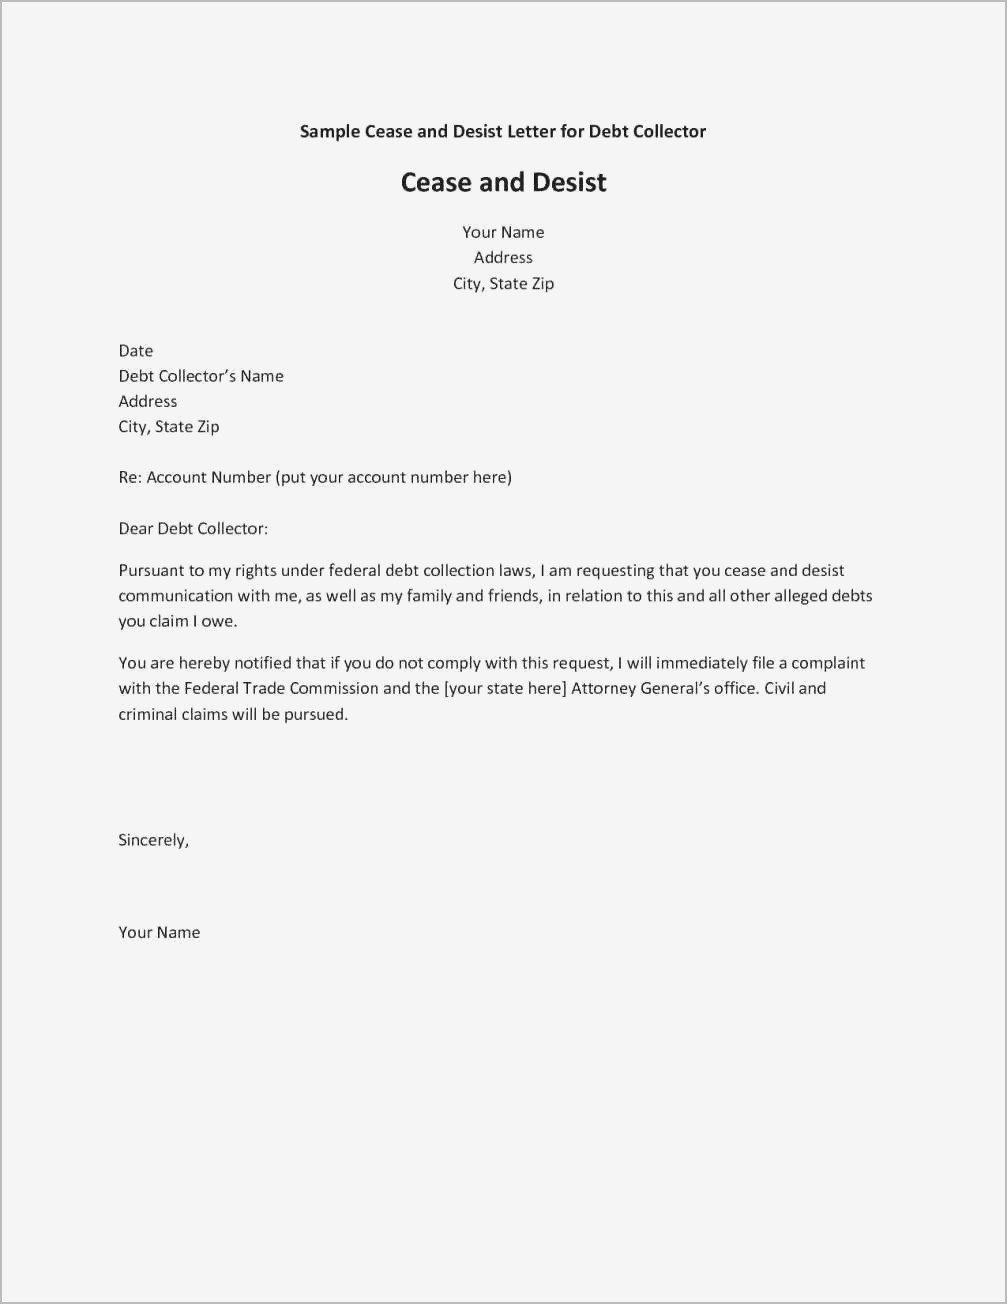 Cease and Desist Letter Trademark Infringement Template - Inspirational Cease and Desist Letter Example Your Template